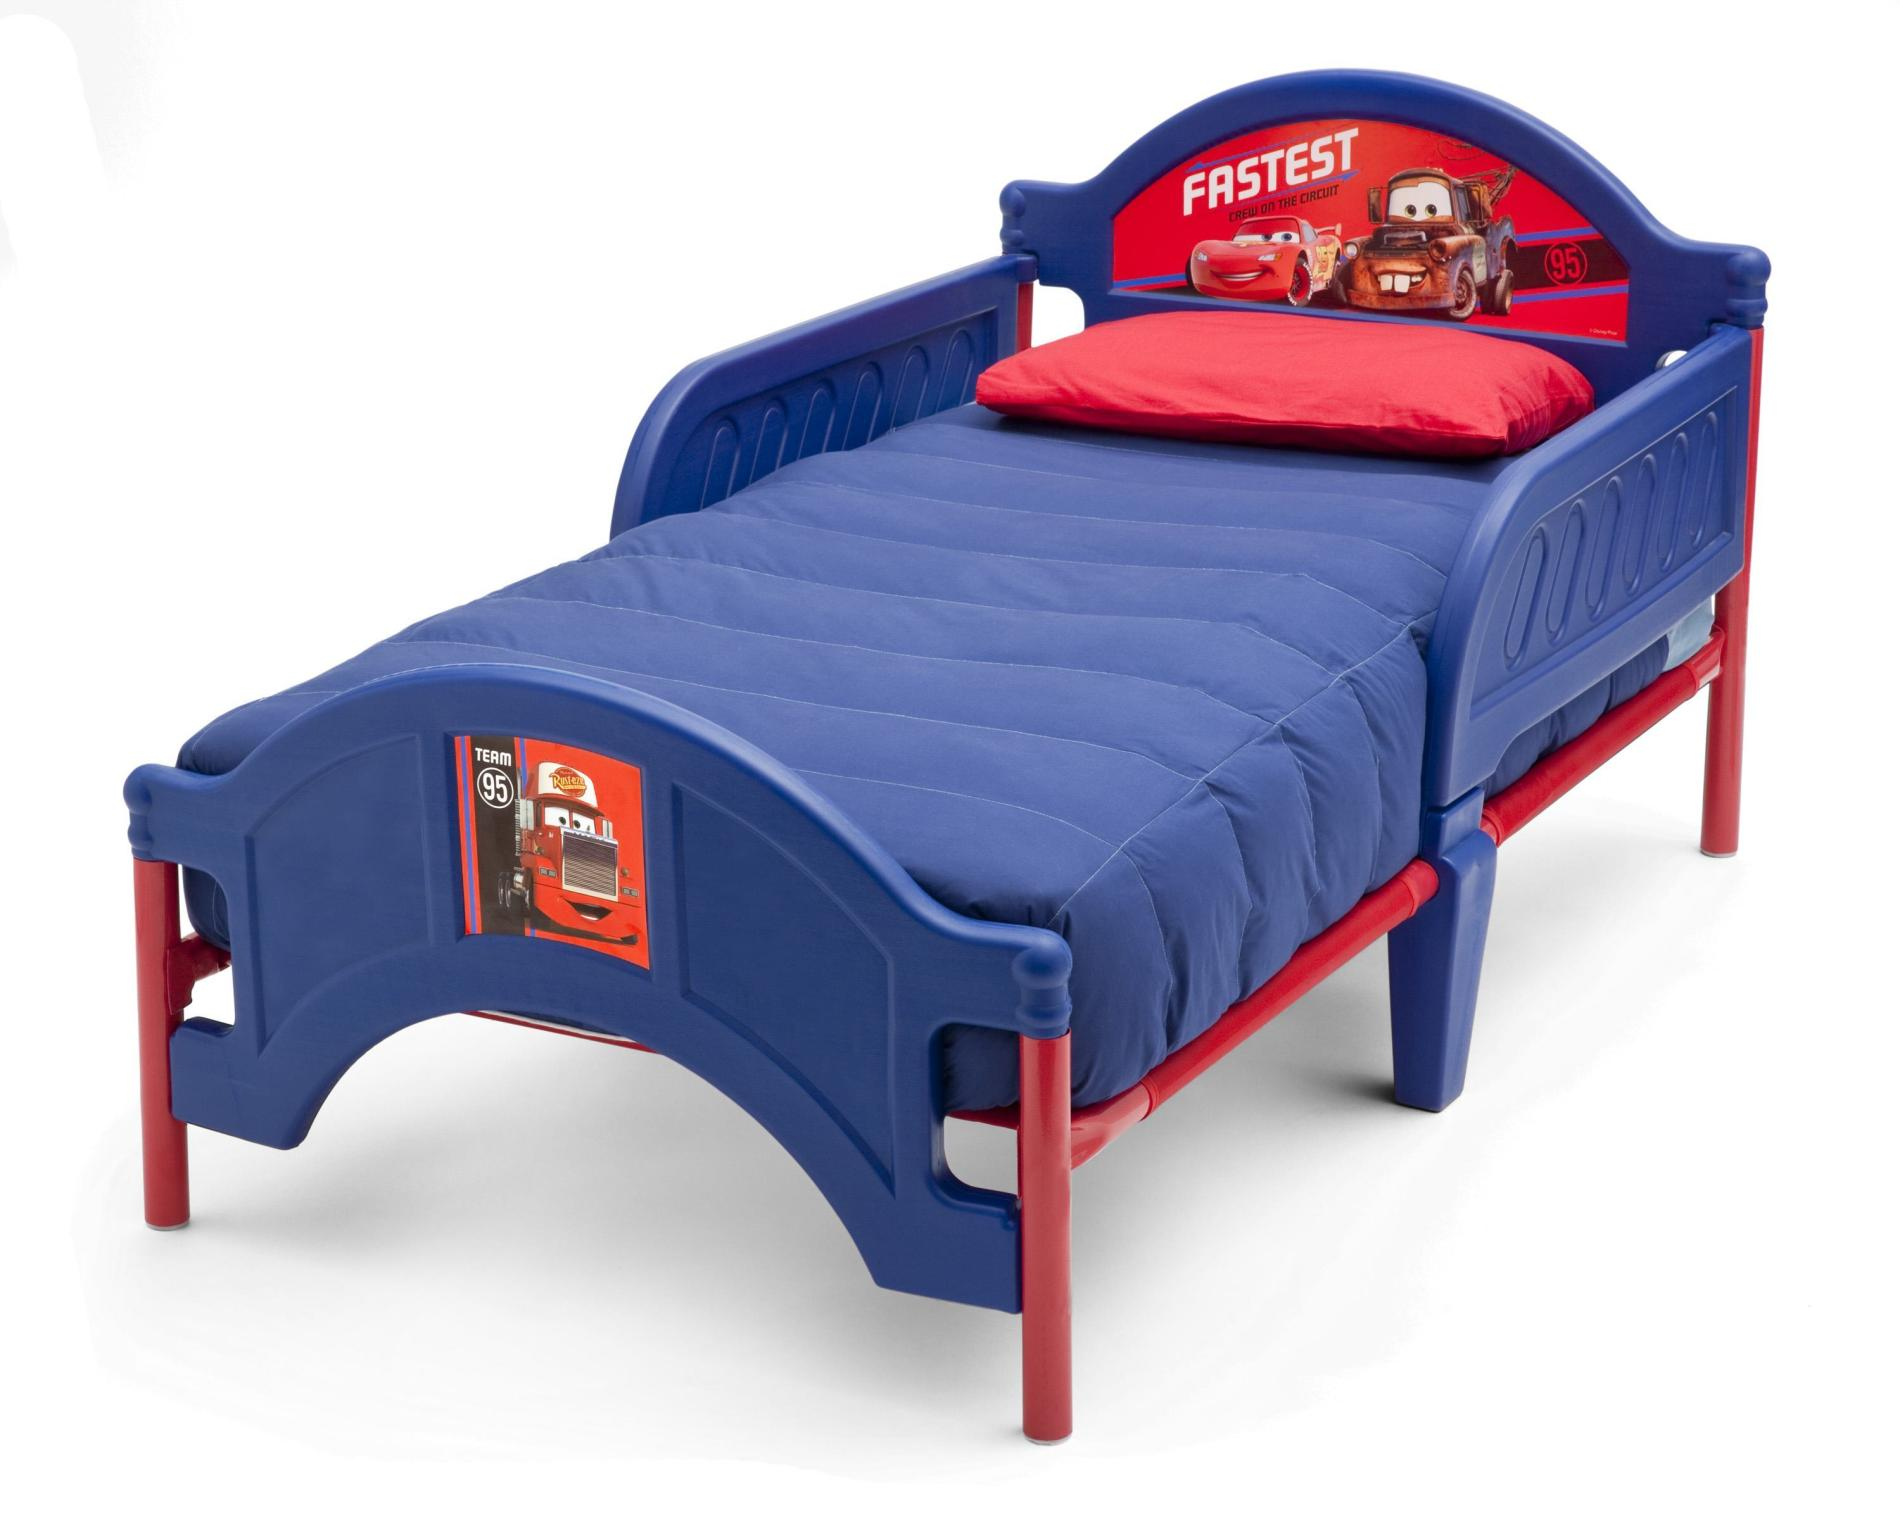 Disney Toddler S Cars Bed Team 95